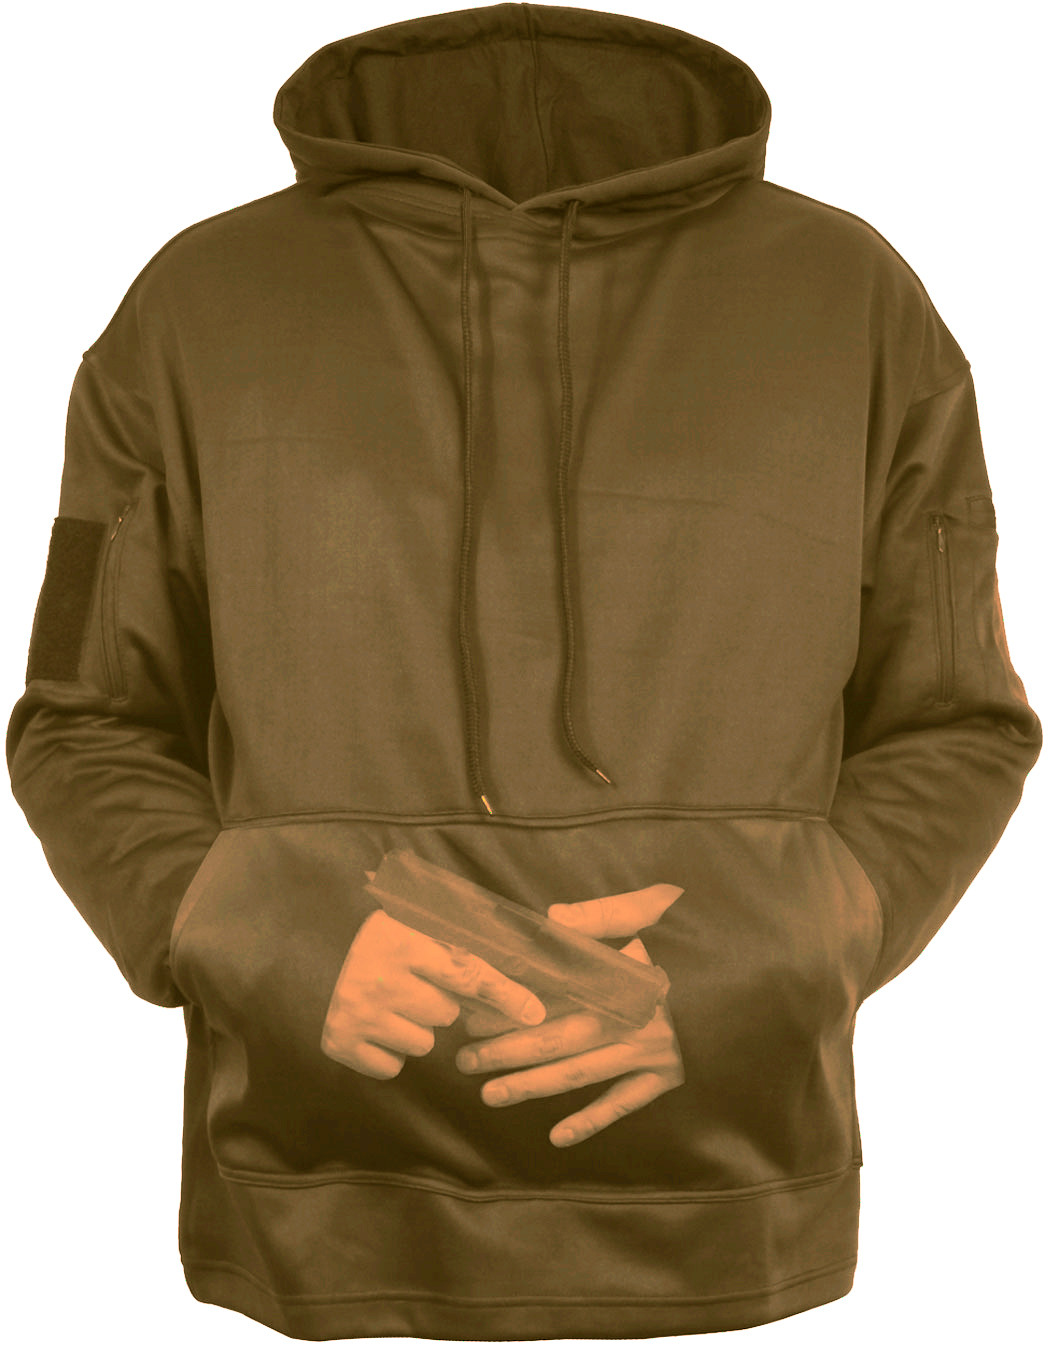 More Views. Coyote Brown Concealed Carry Tactical Hooded Sweatshirt ... 3509729b5d6